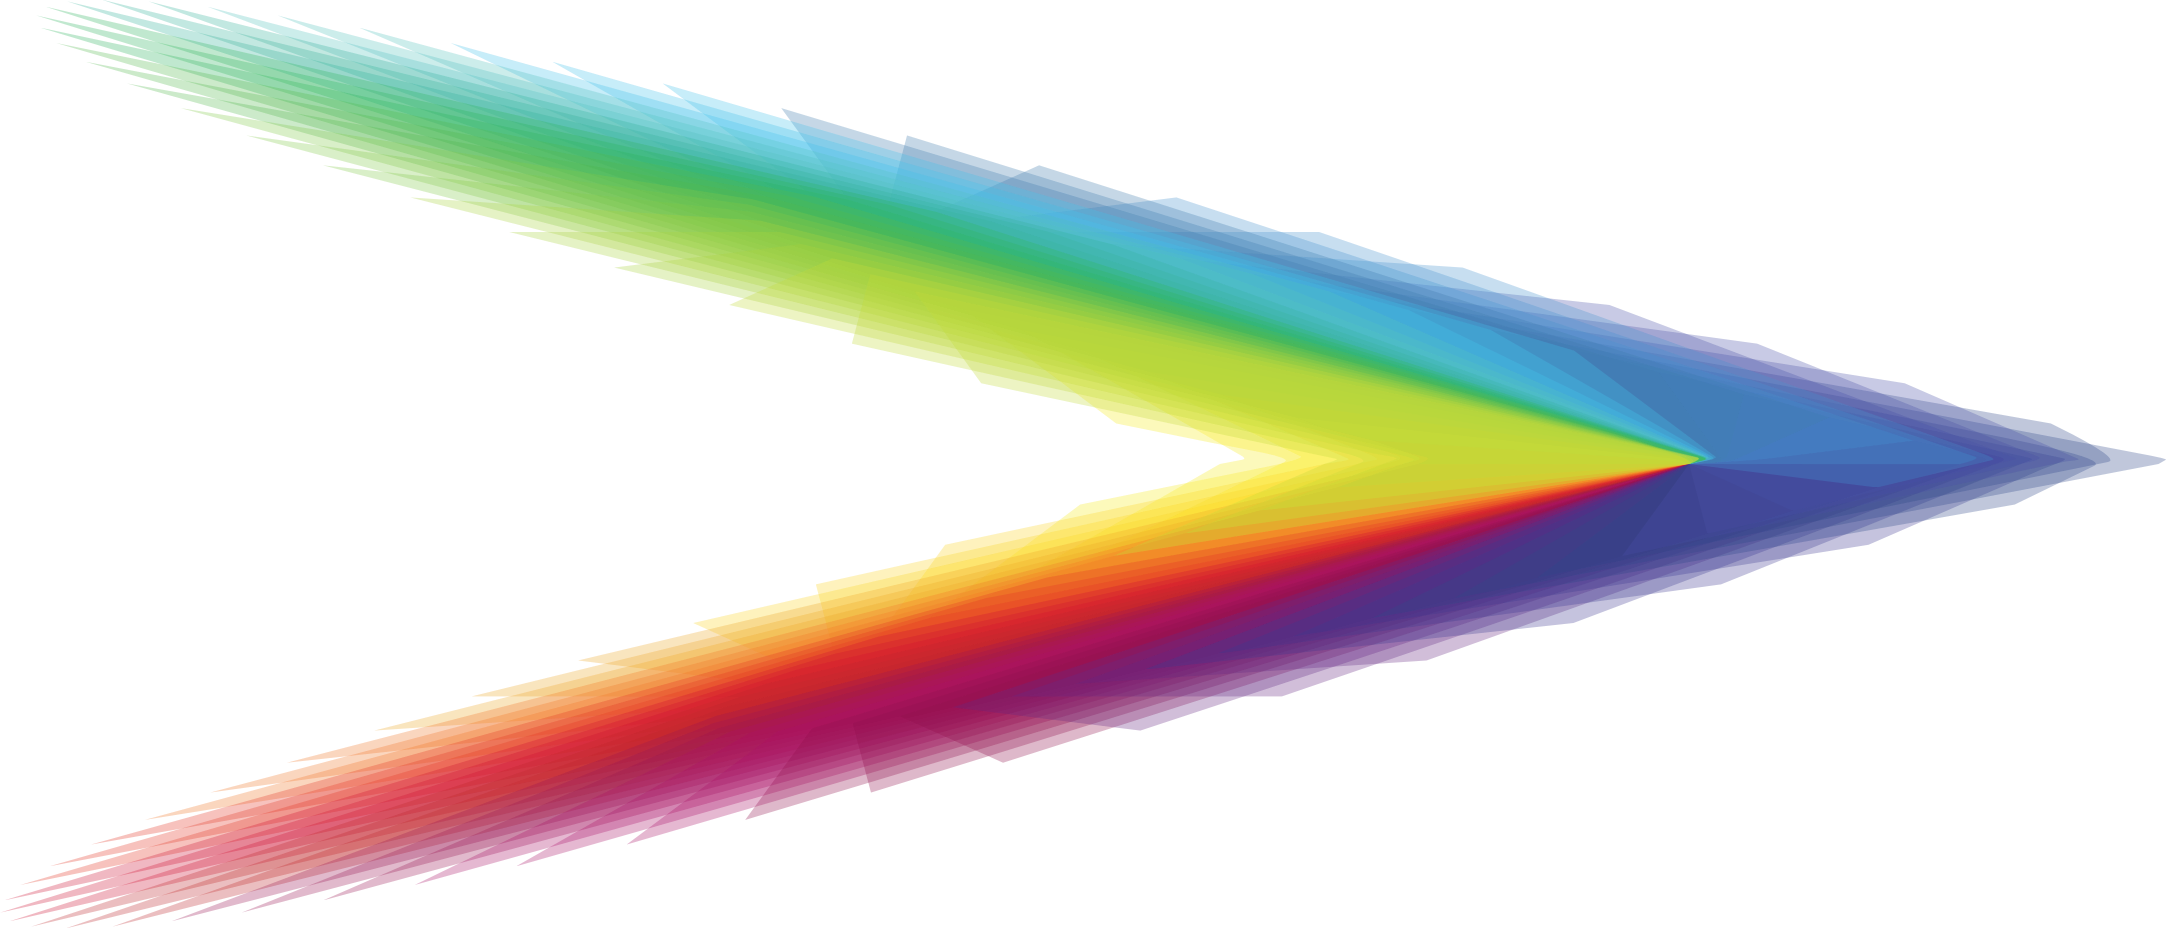 Rainbow Arrow by GDJ